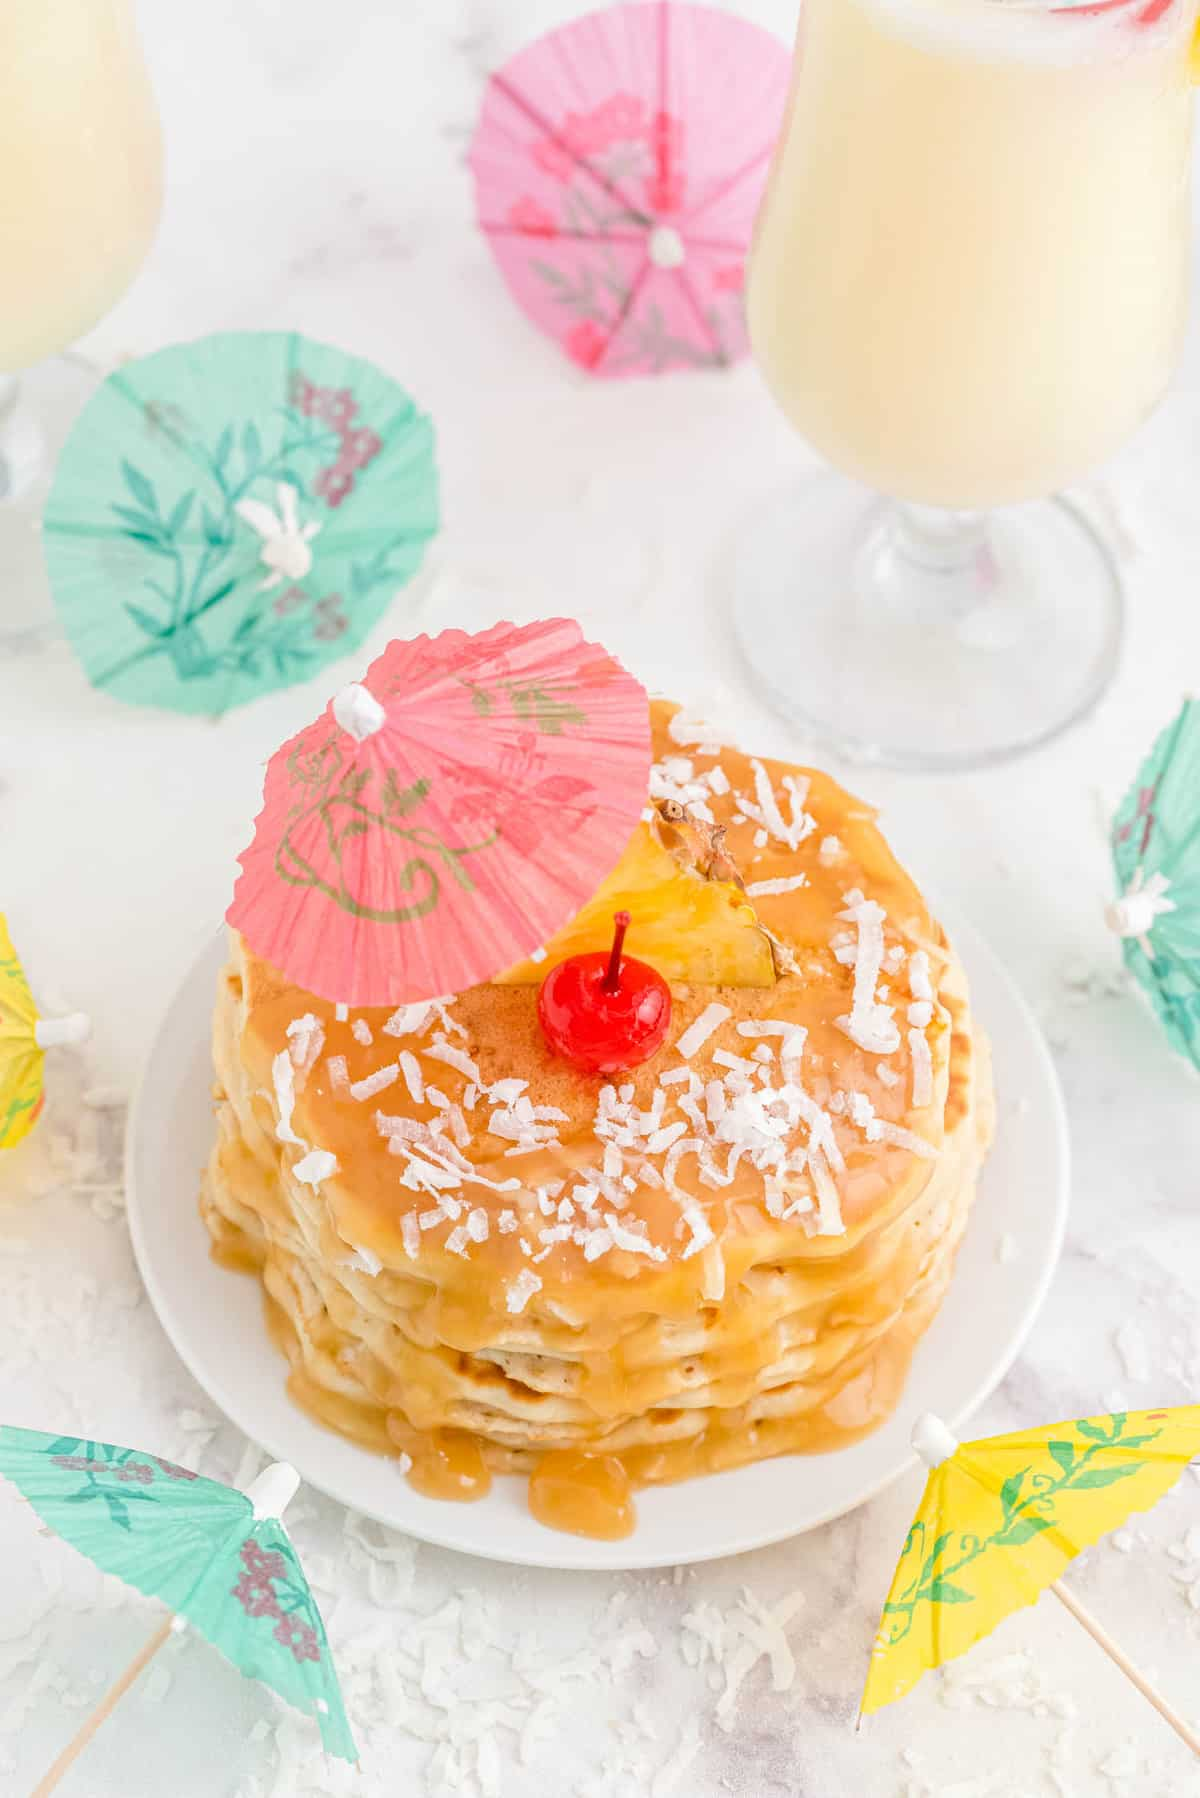 Pina colada pancakes from overhead, topped with coconut, a cherry, and a paper umbrella.